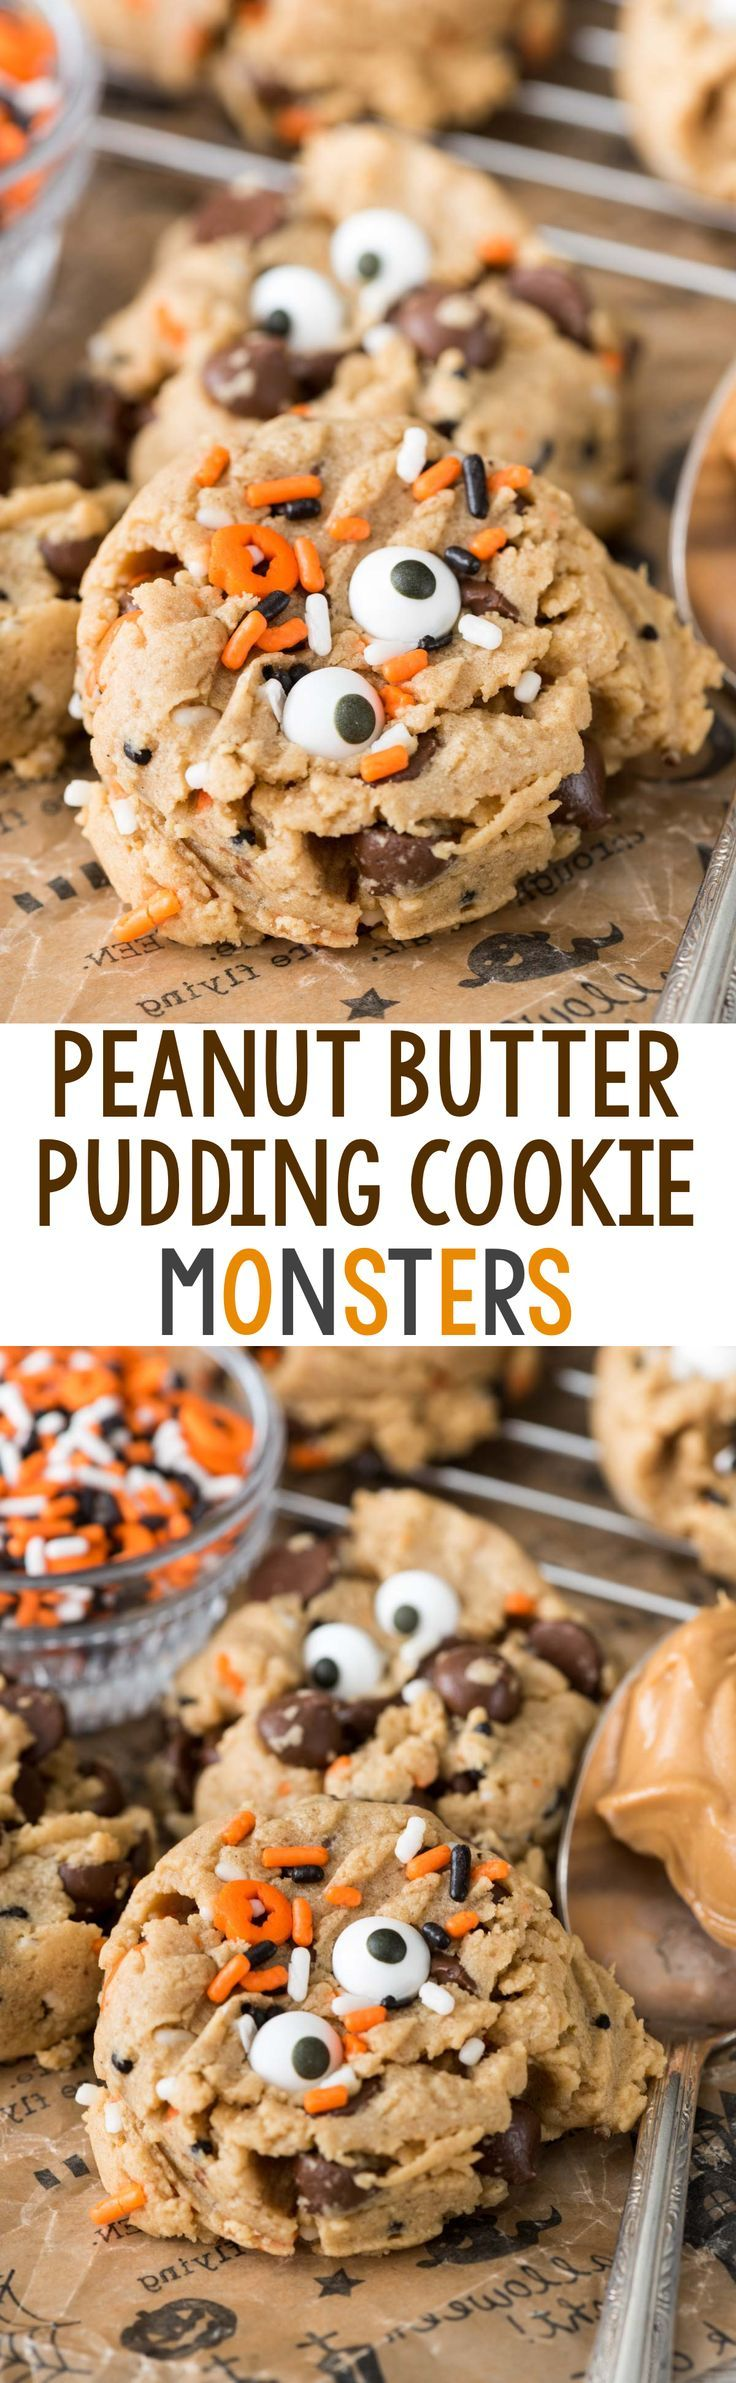 Monster Peanut Butter Pudding Cookies - this easy peanut butter cookie recipe has pudding in the dough so they stay soft for days! Add chocolate chips and a cute monster face for Halloween!